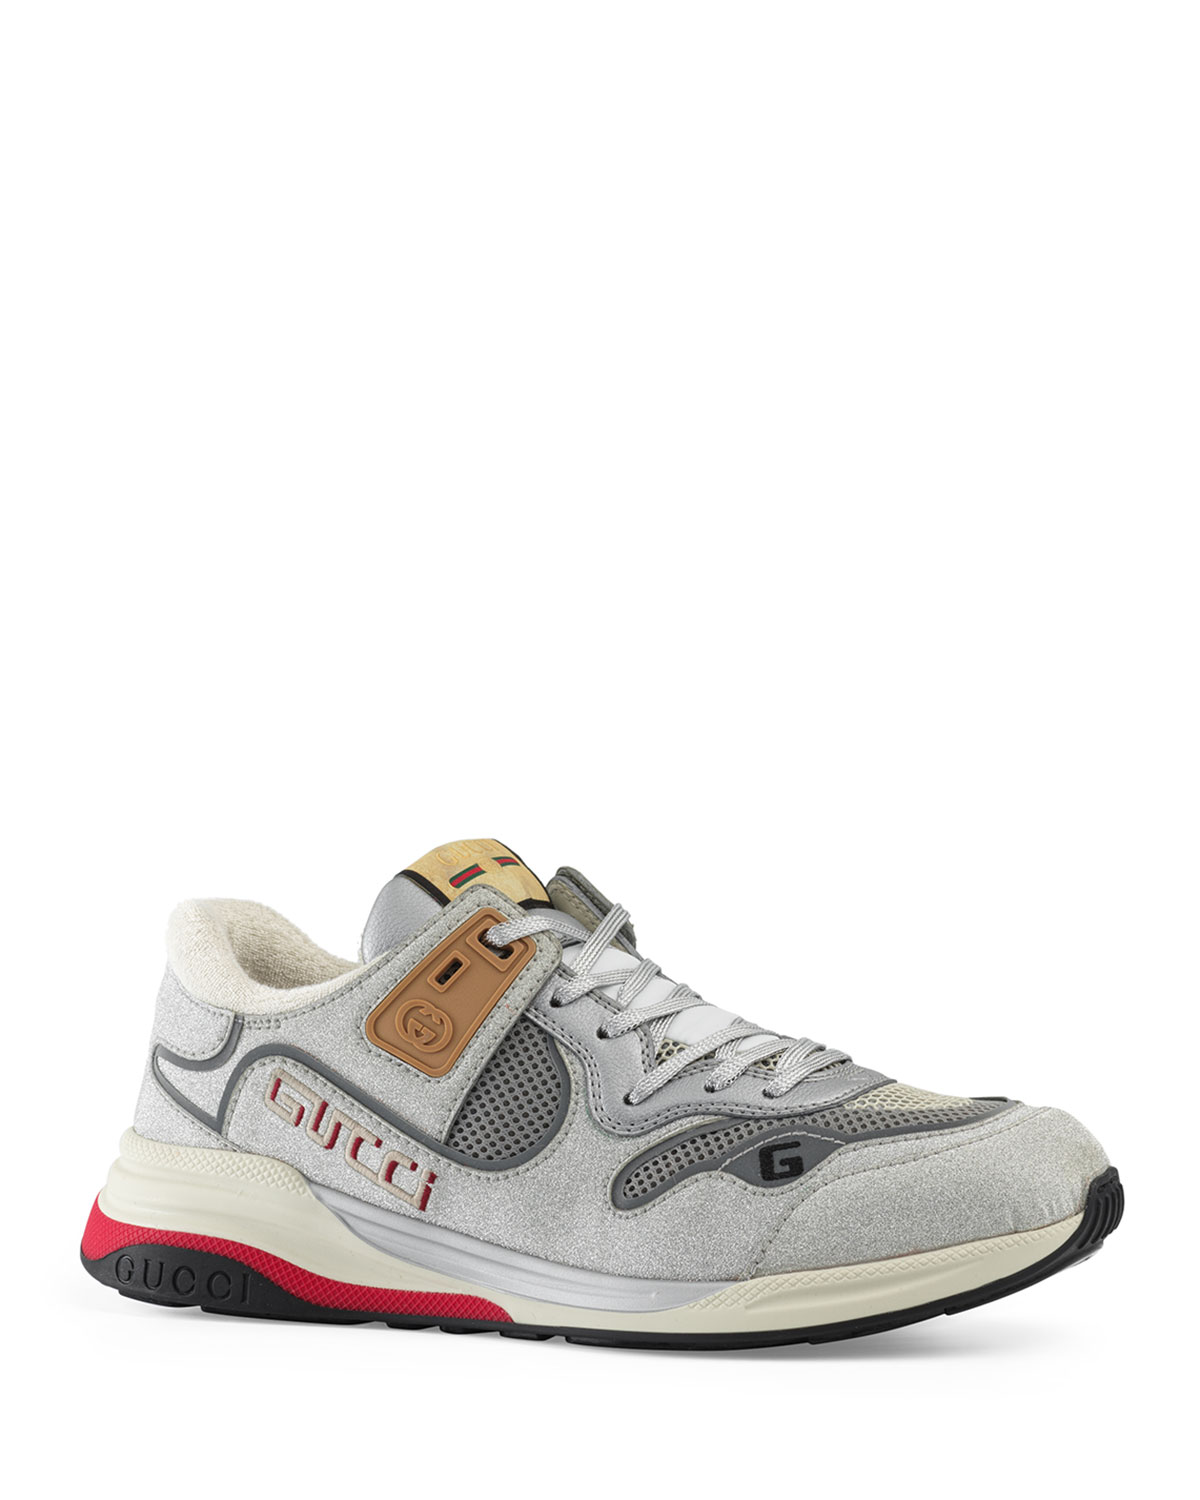 Gucci Men's Ultrapace Vintage Mixed-Media Sneakers